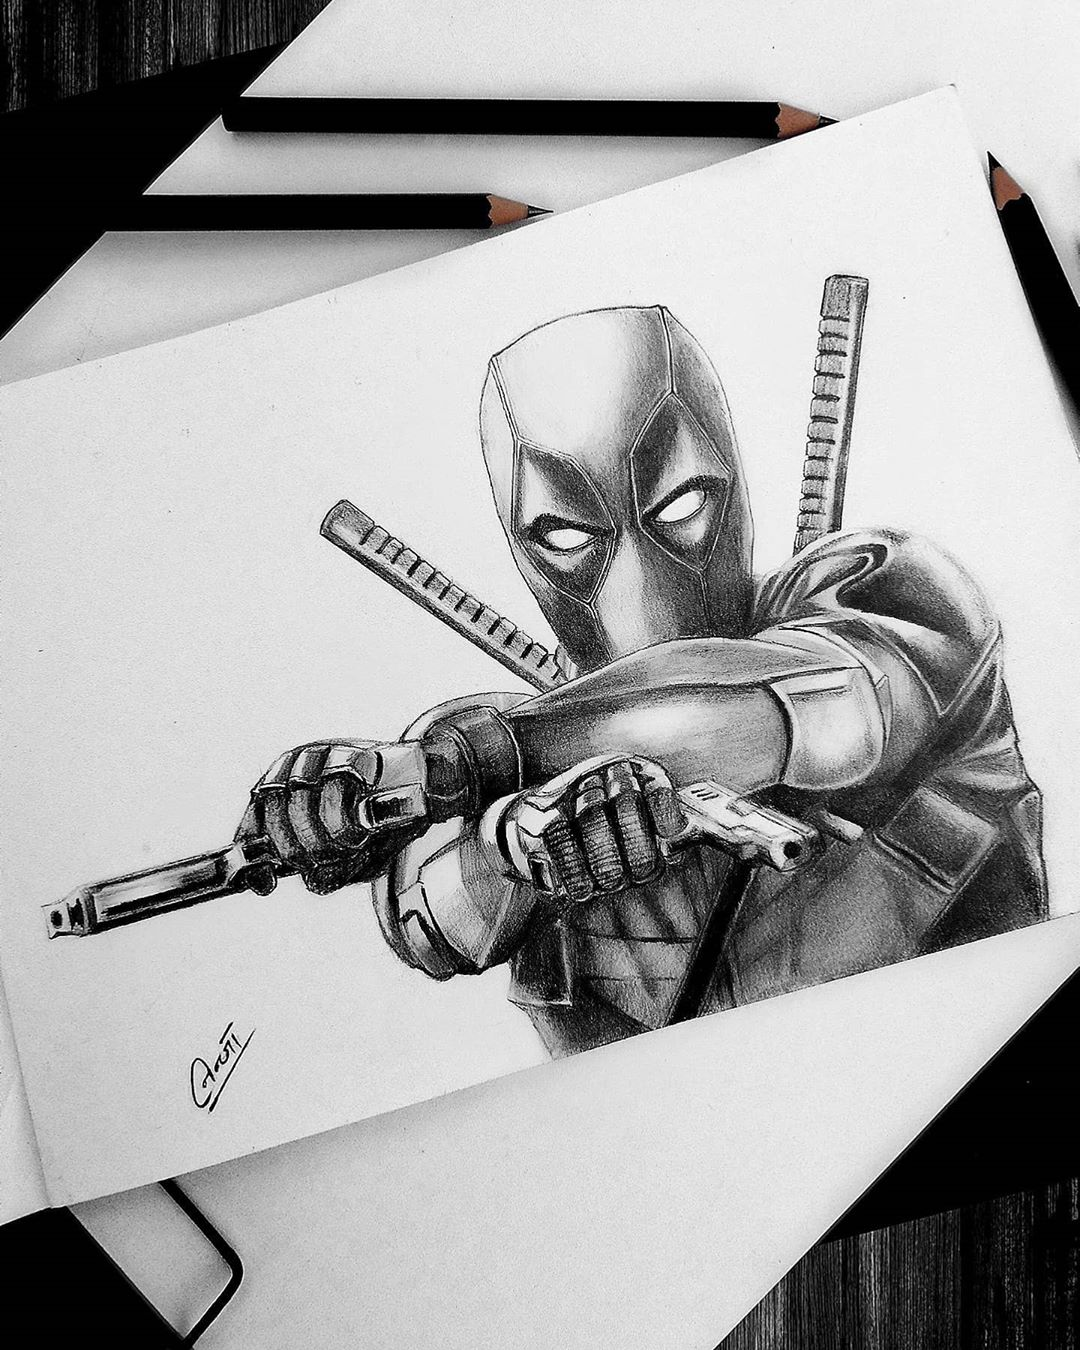 deadpool sketch deadpool sketch by brianthies on deviantart with images sketch deadpool